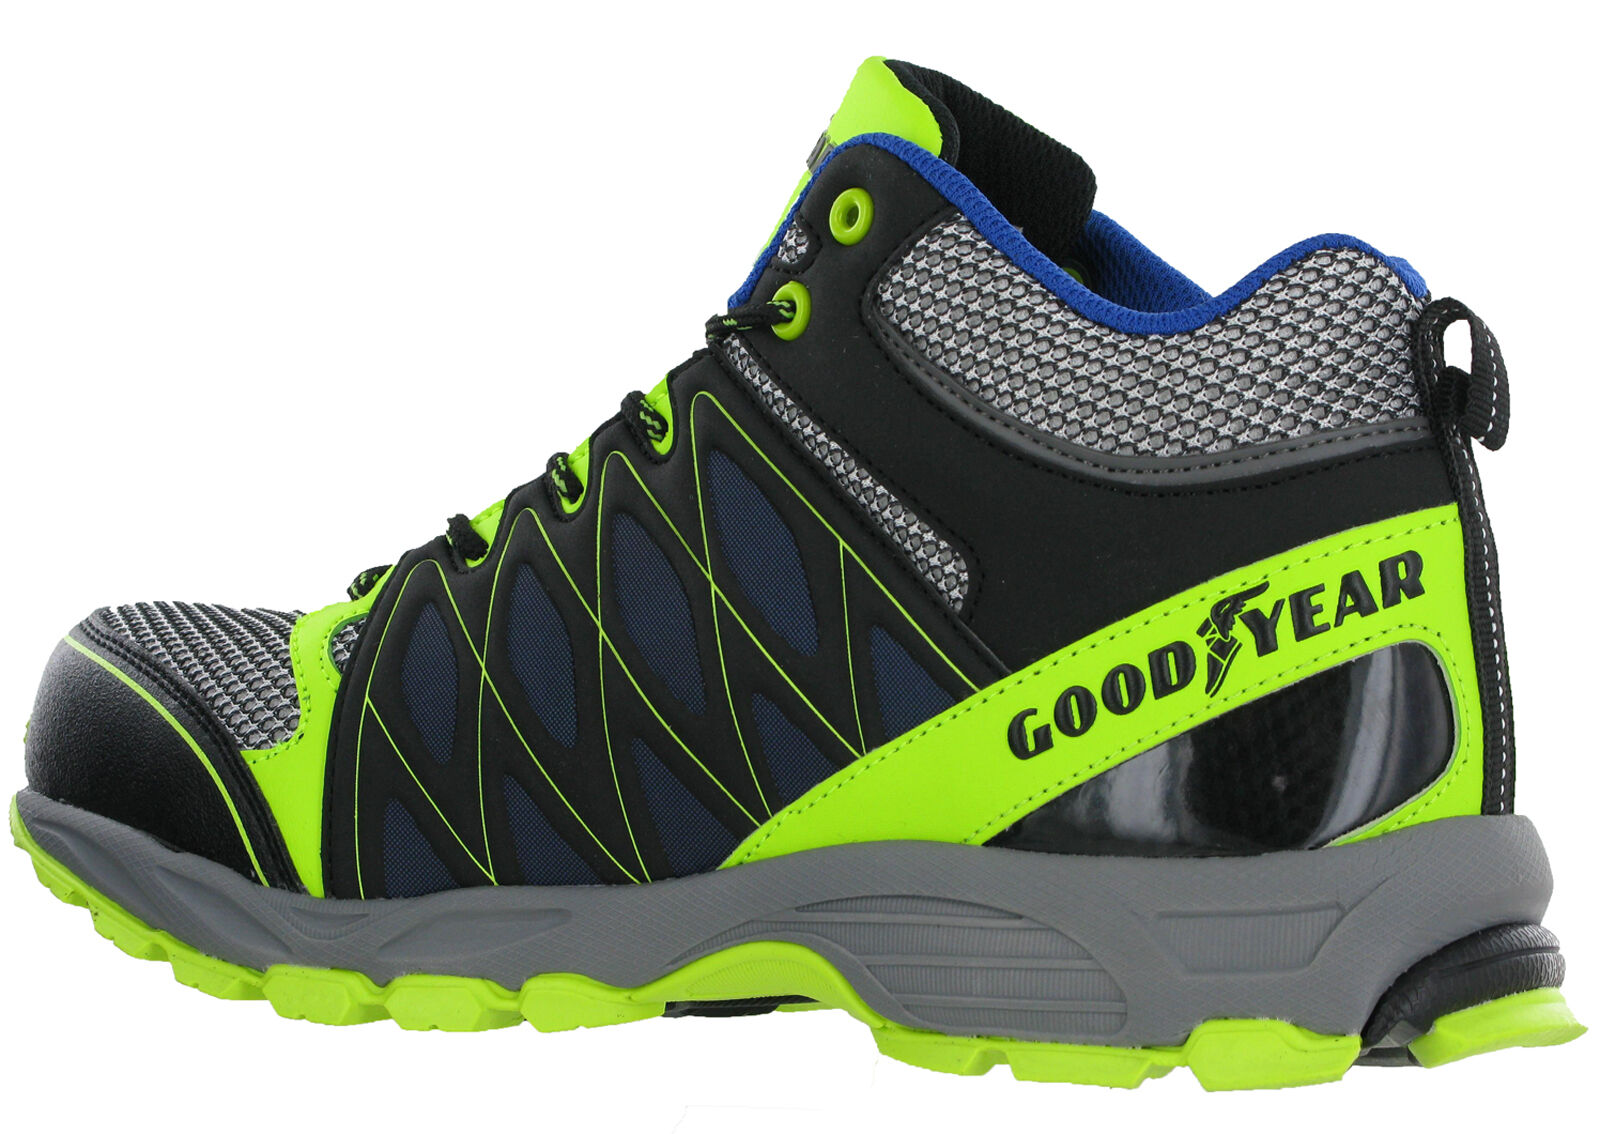 Goodyear Safety Boots Composite Toe S1P Lightweight Metal Up Free Lace Up Metal Mens 1533 63edc6